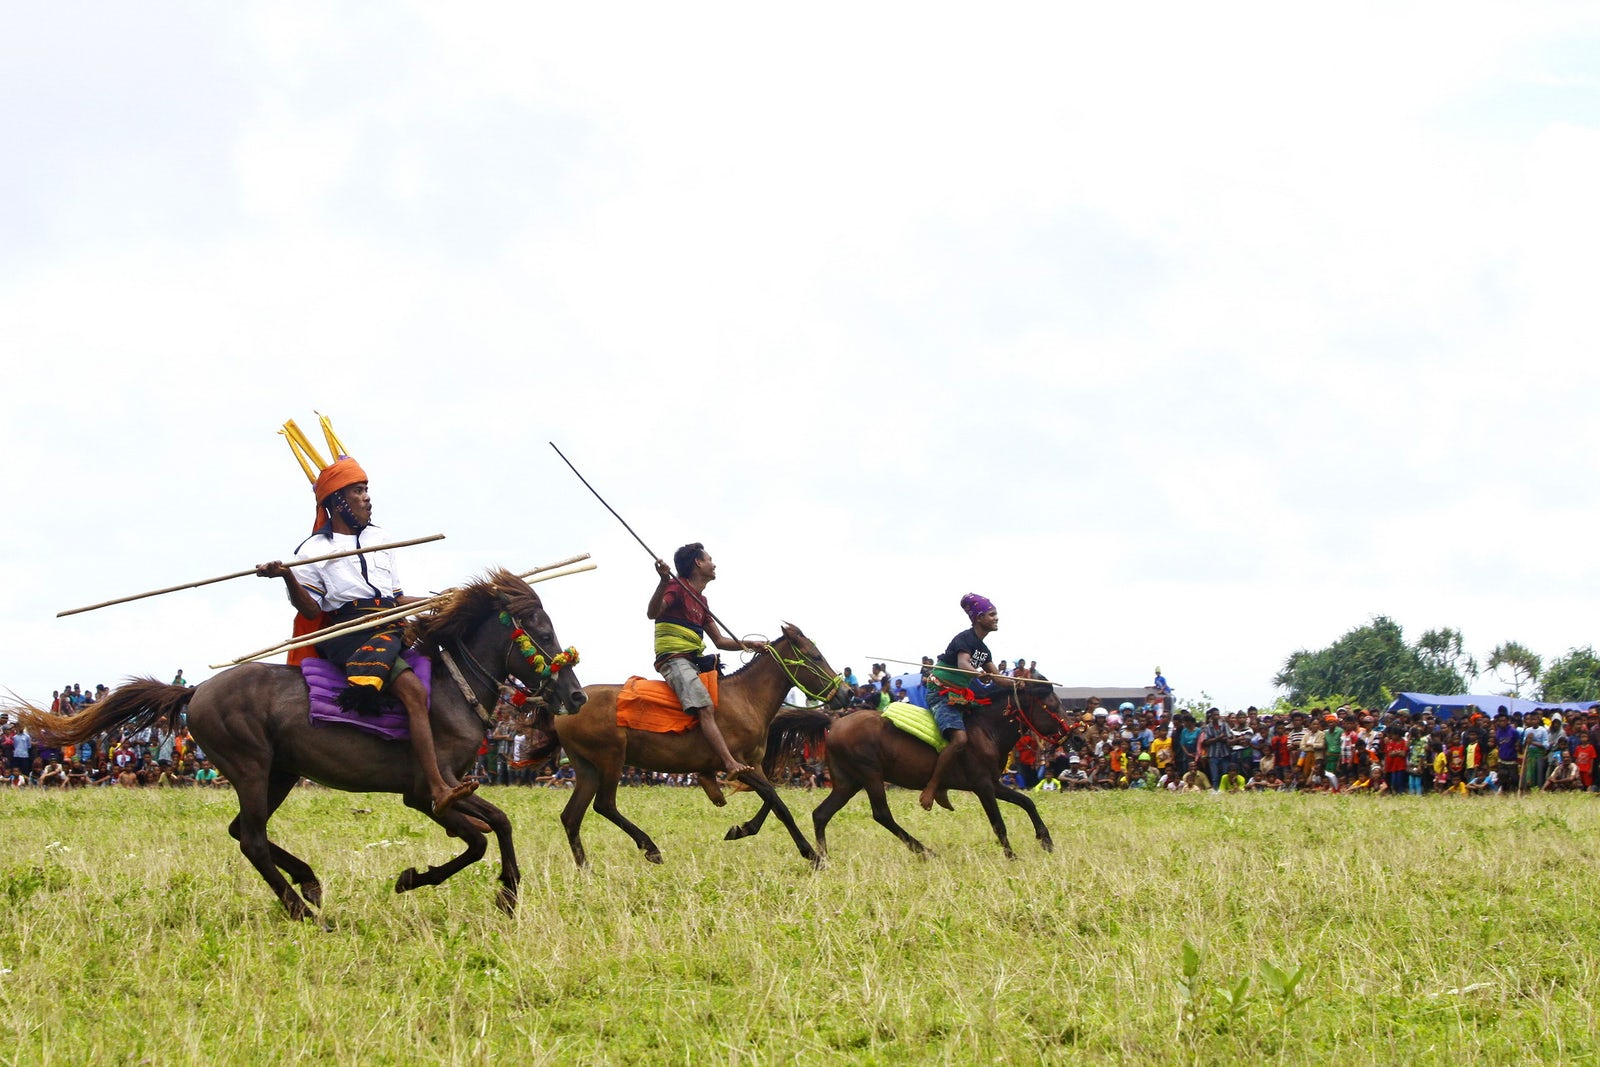 Pasola is a traditional war game between two groups of equestrian 'troops' who throw javelins